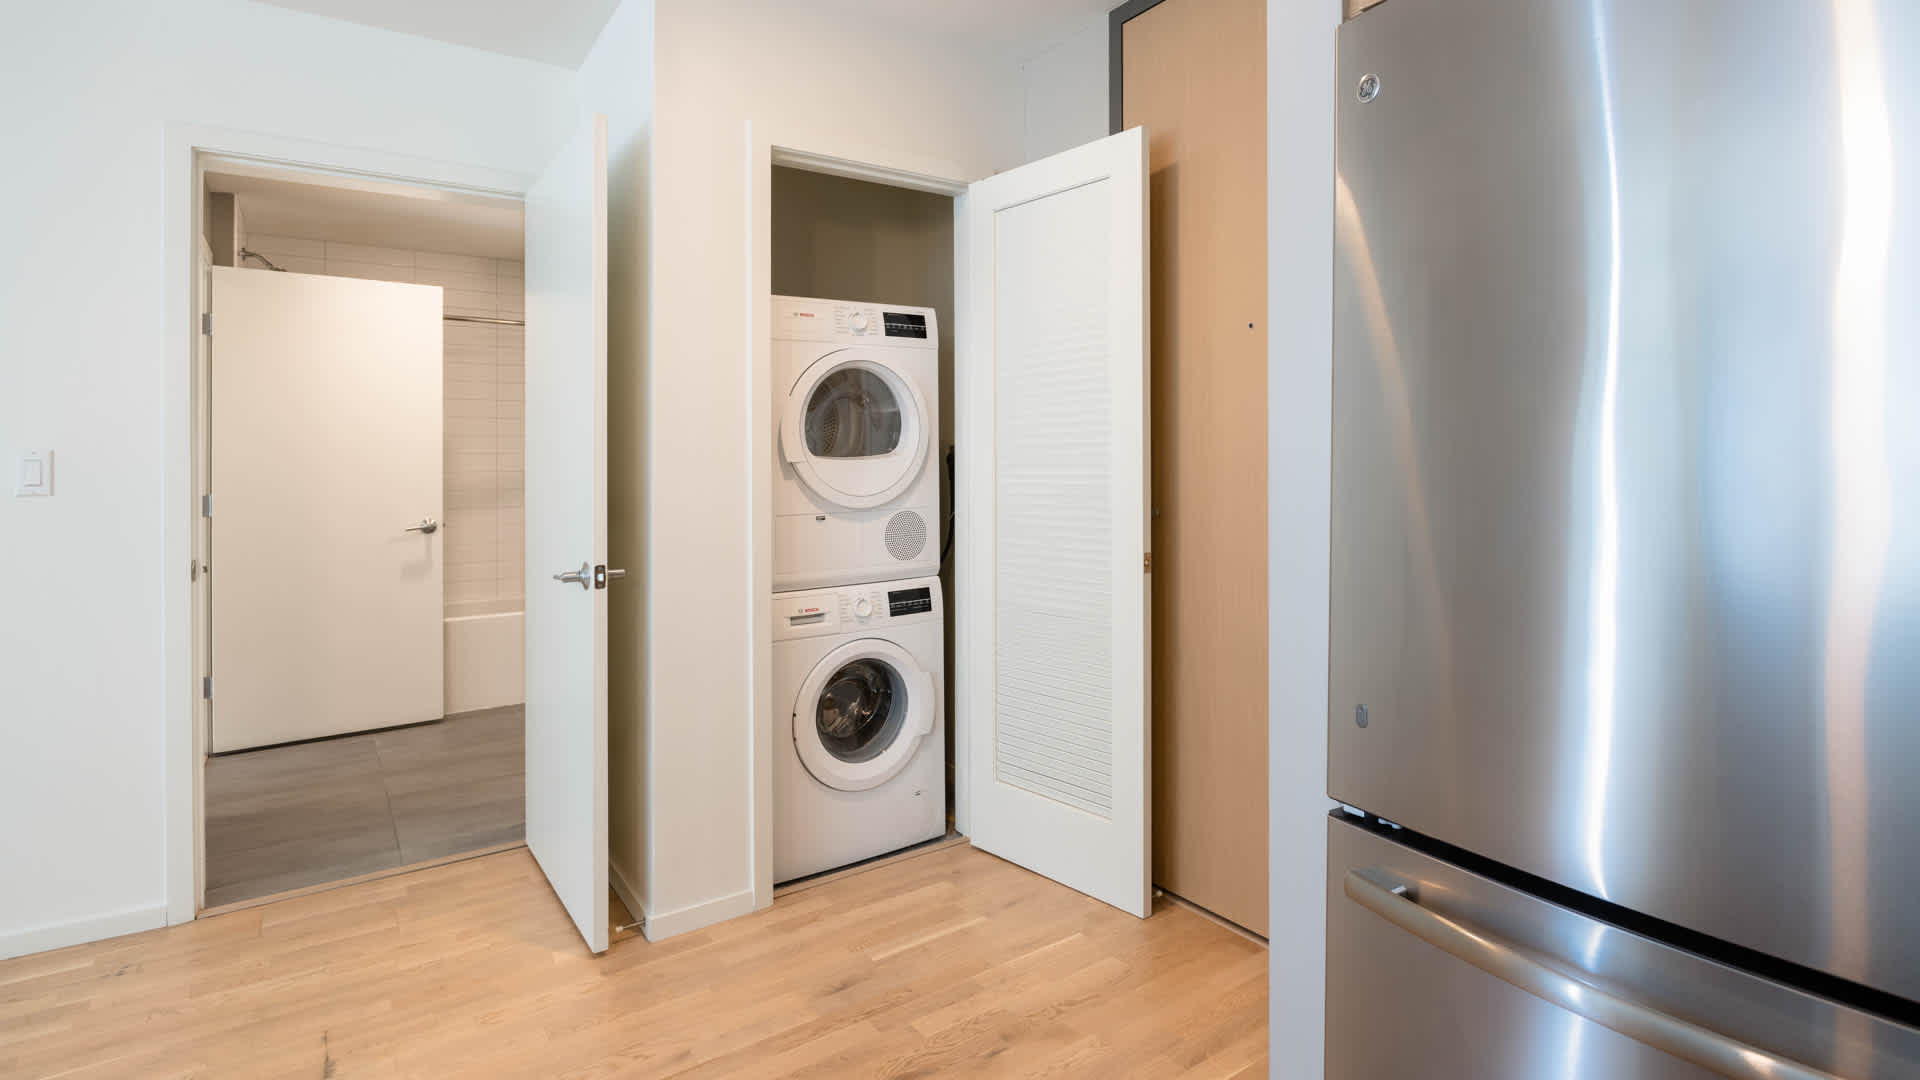 Girard apartments in home washer and dryer